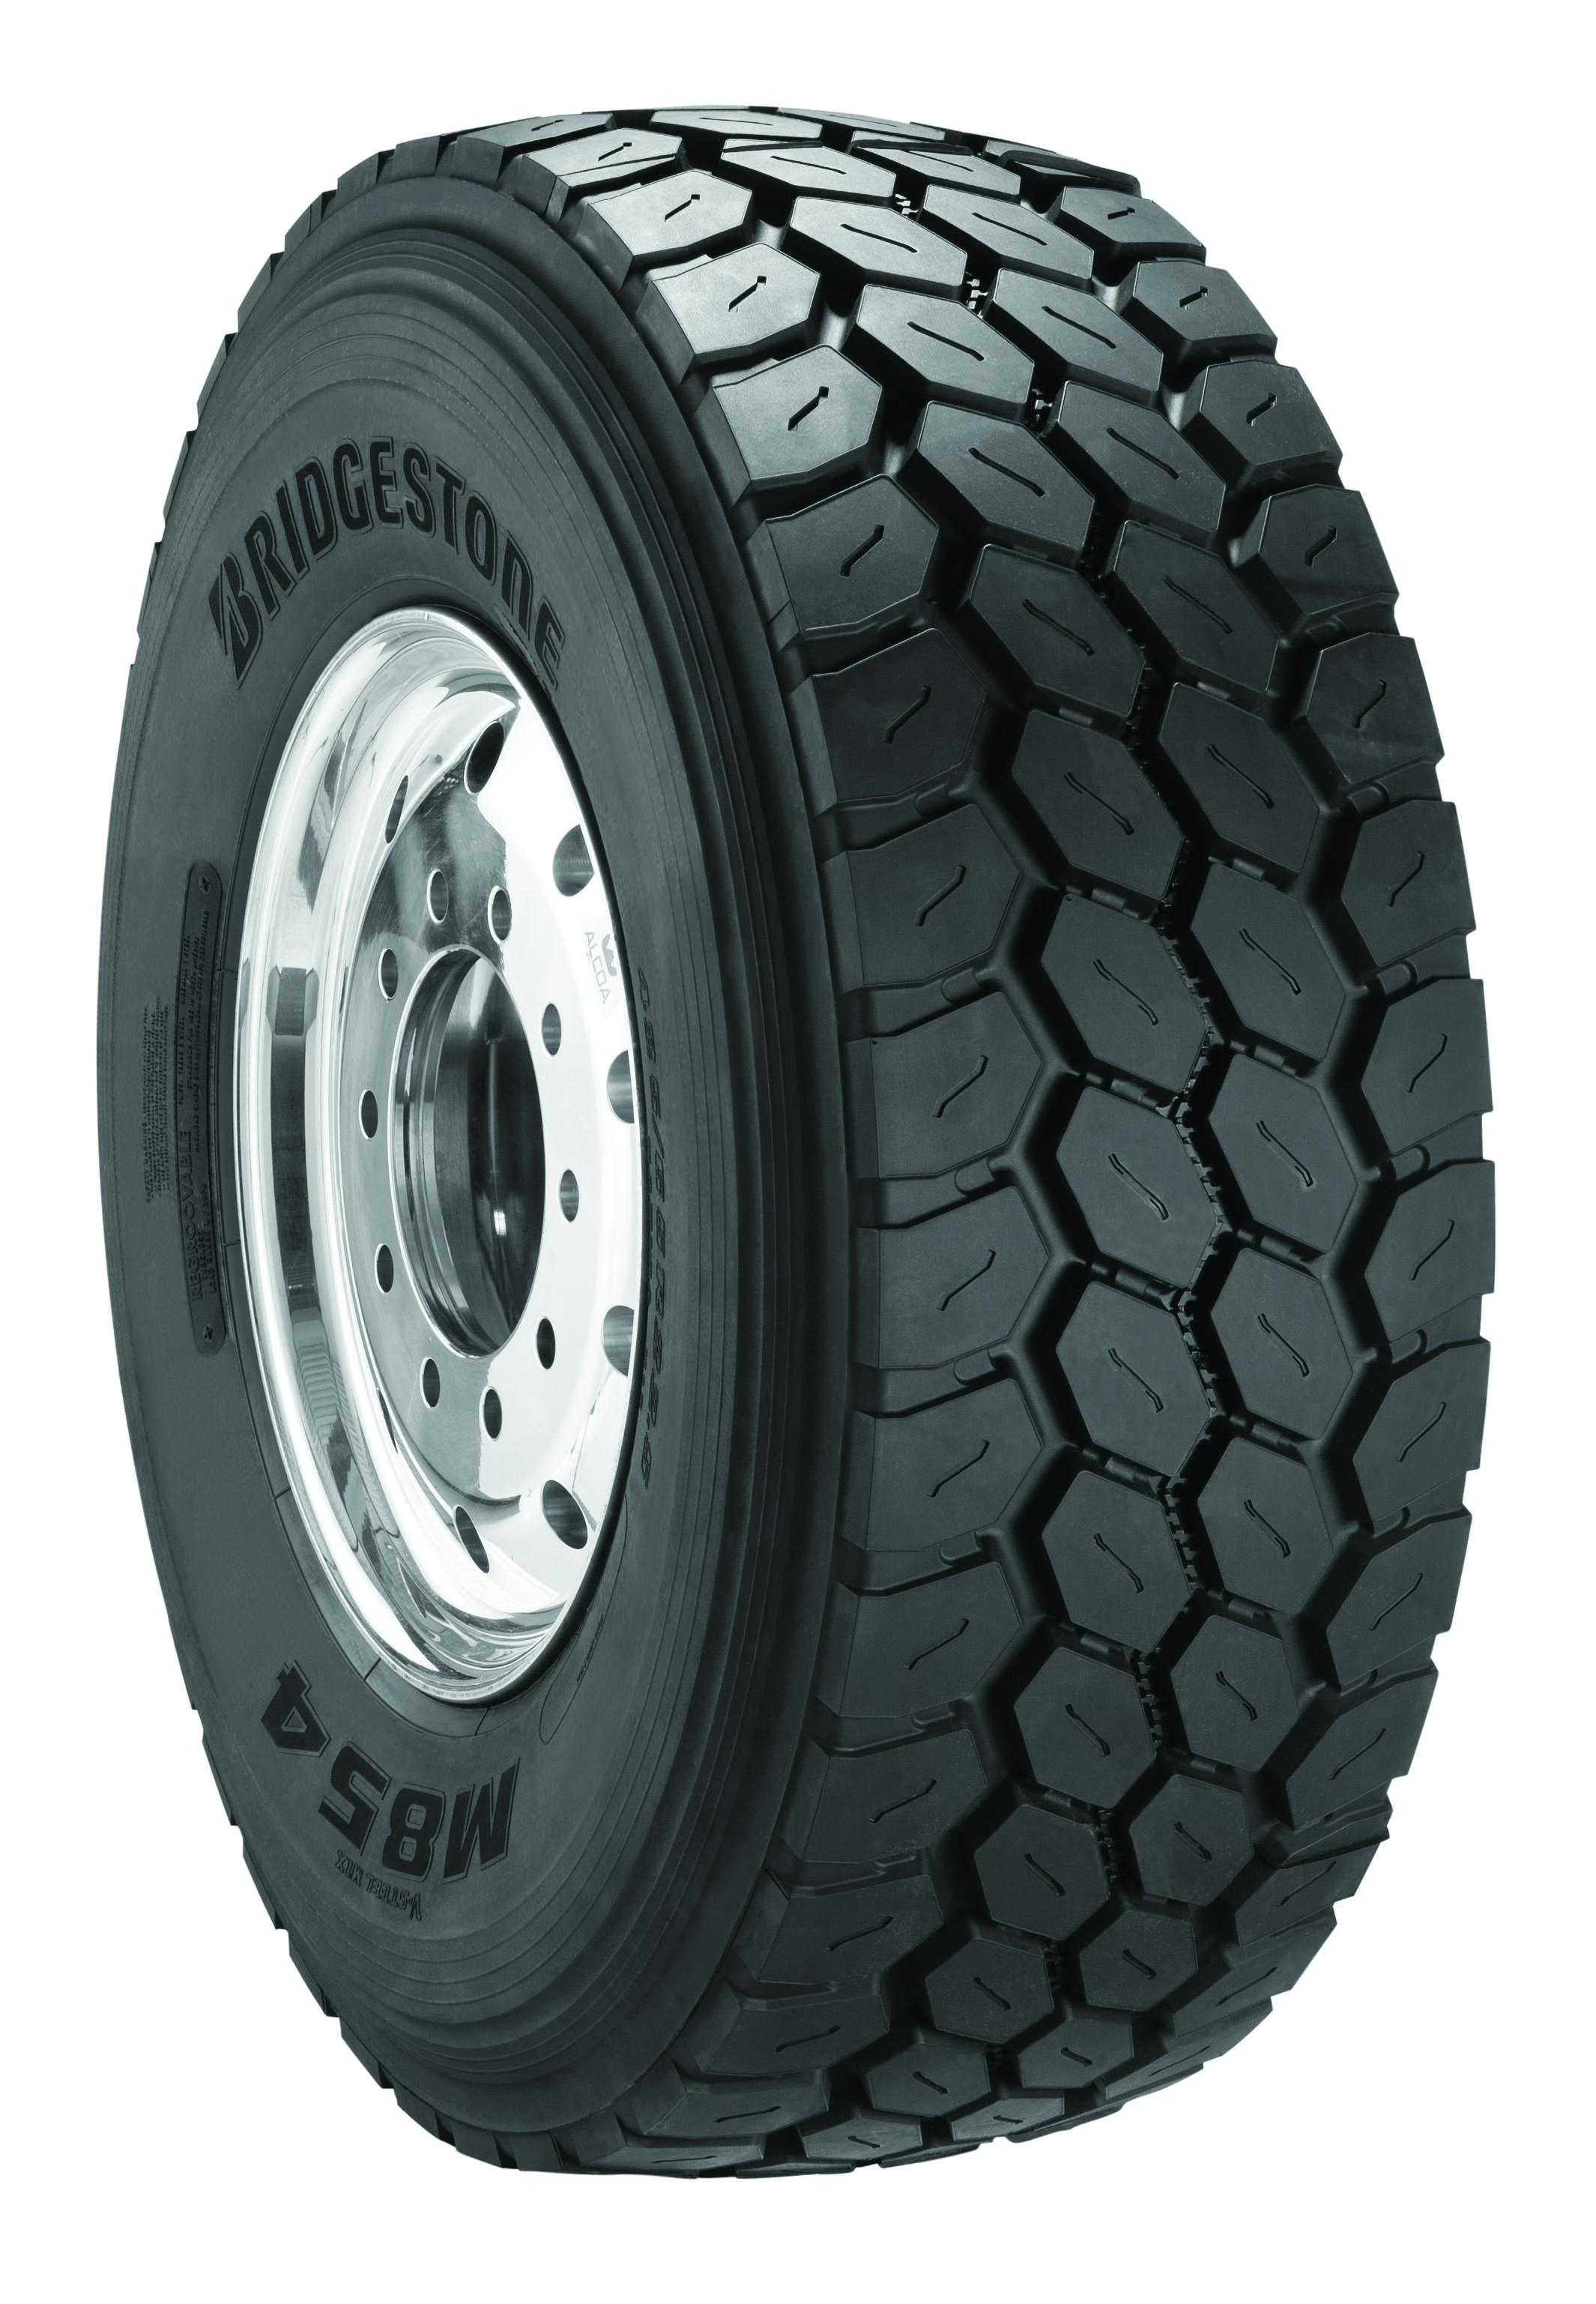 Bridgestone Introduces New M854 Wide Base All-Position Tire